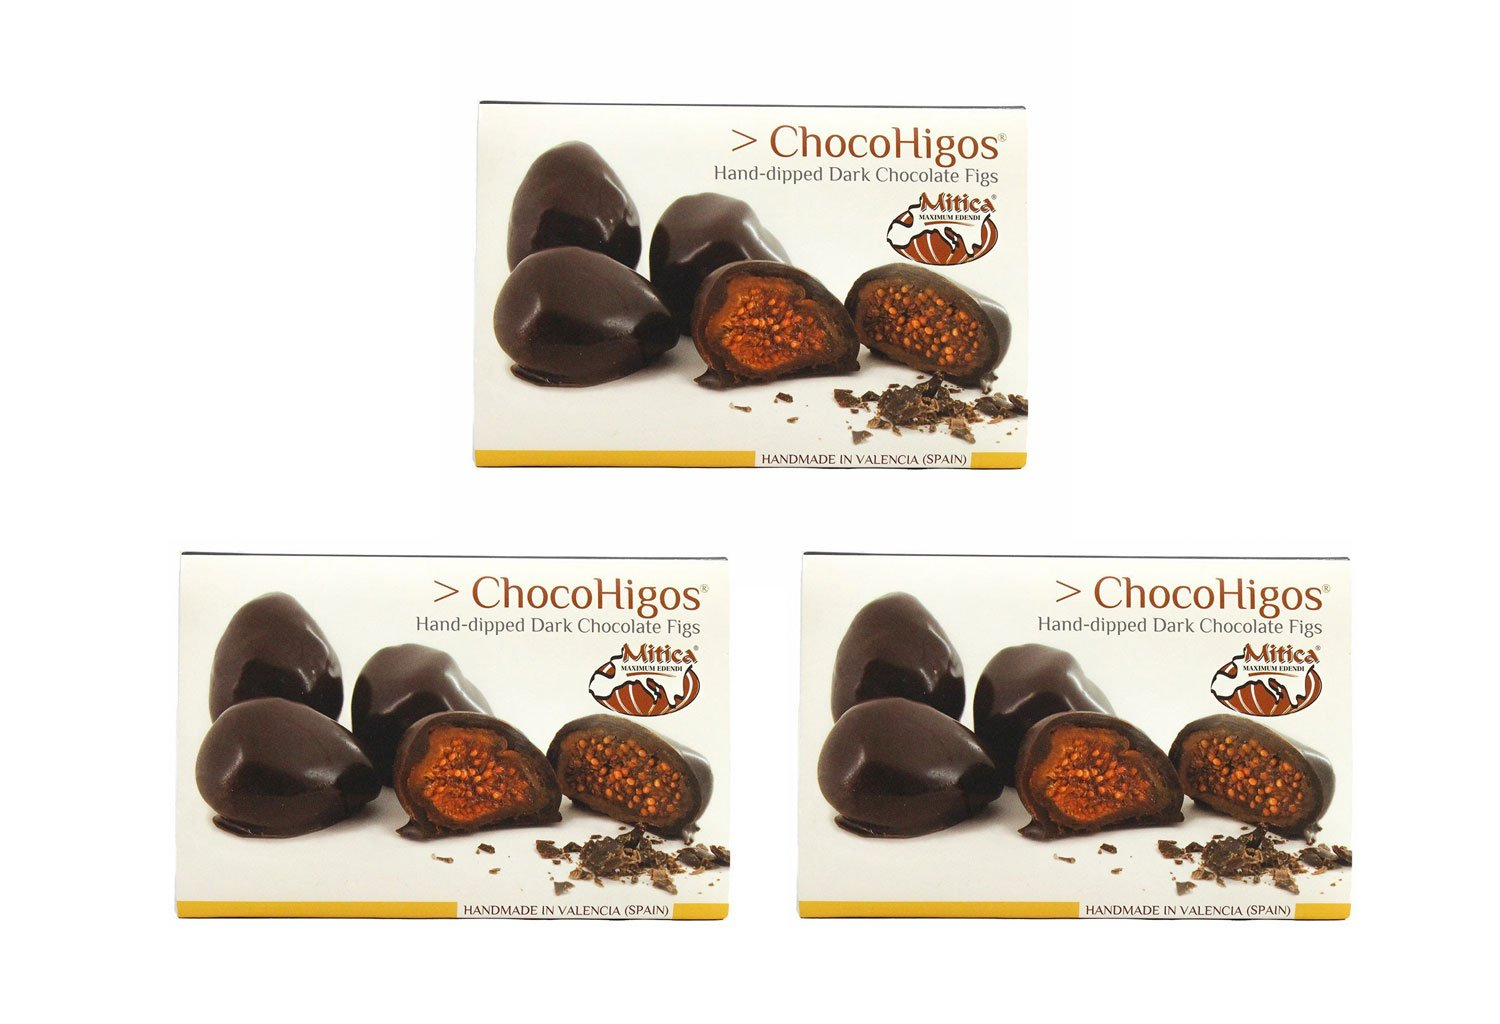 ChocoHigos - Hand-dipped Dark Chocolate Figs - 1 container, 4.9 oz (Pack of 3) by Mitica